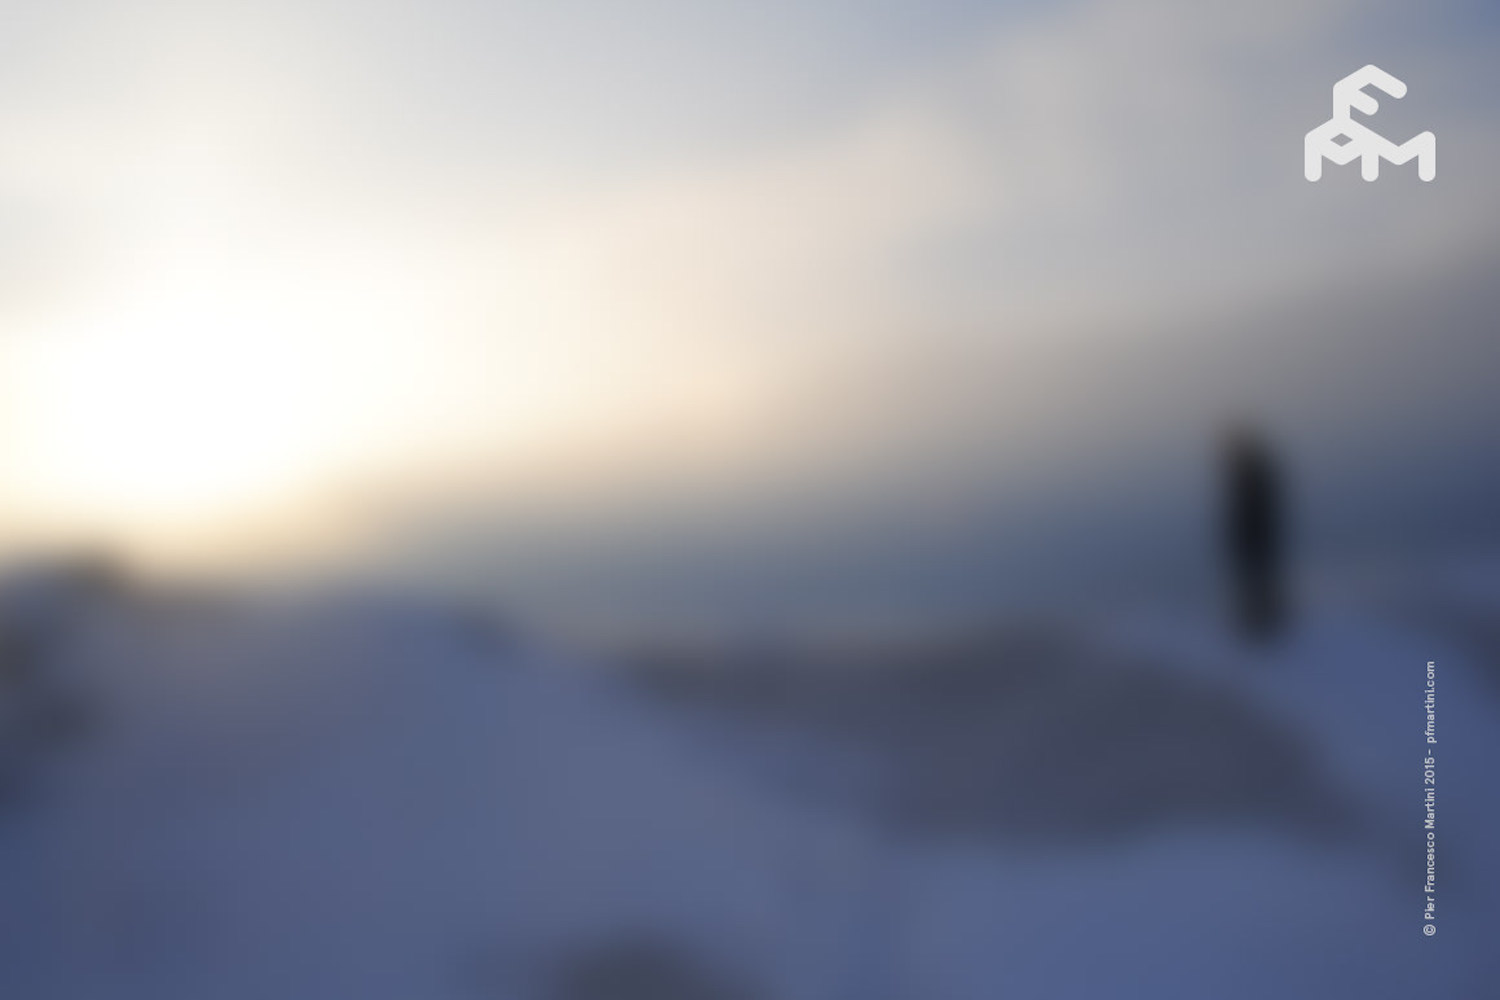 20 Winter Blurred Backgrounds example image 4